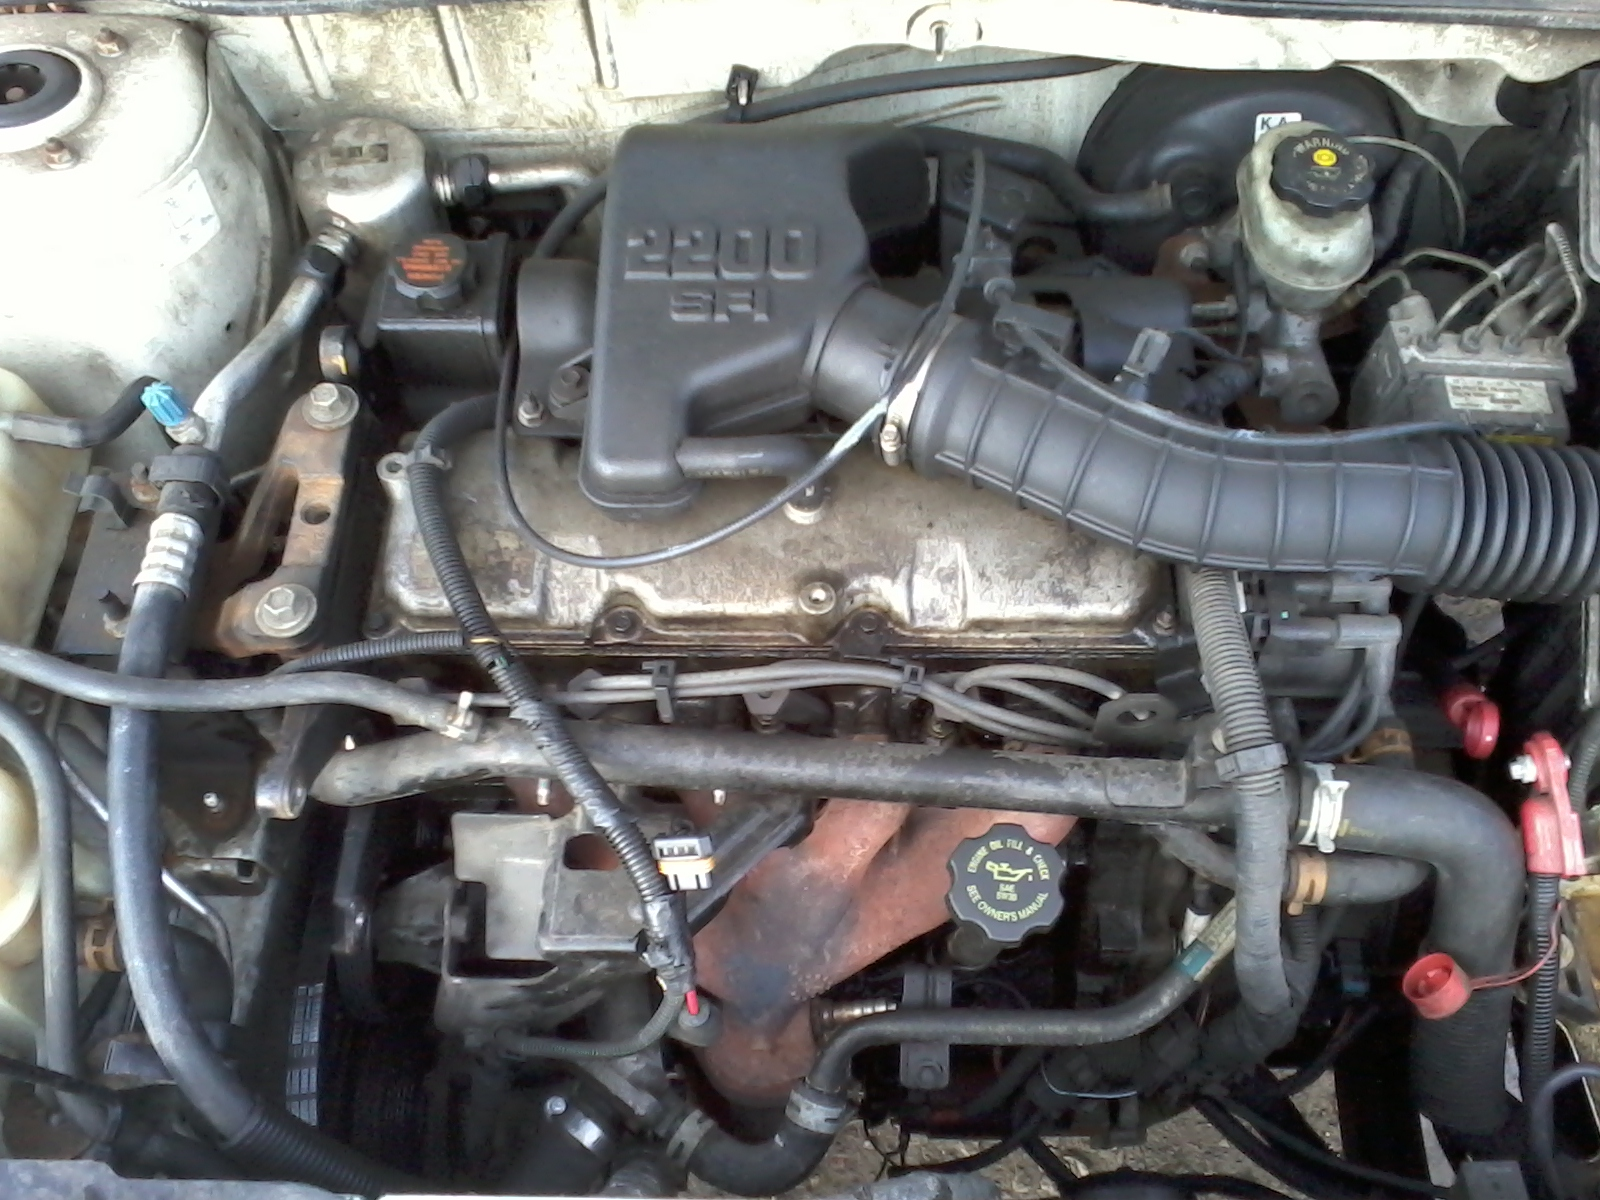 2003 Chevy 2 2l Engine Diagram | Wiring Diagram on c10 wiring harness, k10 wiring harness, civic wiring harness, cavalier wiring harness, tundra wiring harness, olds wiring harness, h2 wiring harness, f150 wiring harness, nova wiring harness, scout ii wiring harness, k1500 wiring harness, silverado wiring harness, h3 wiring harness, corvette wiring harness, gmc wiring harness, camaro wiring harness, ranger wiring harness, k20 wiring harness, b2 wiring harness, s13 wiring harness,